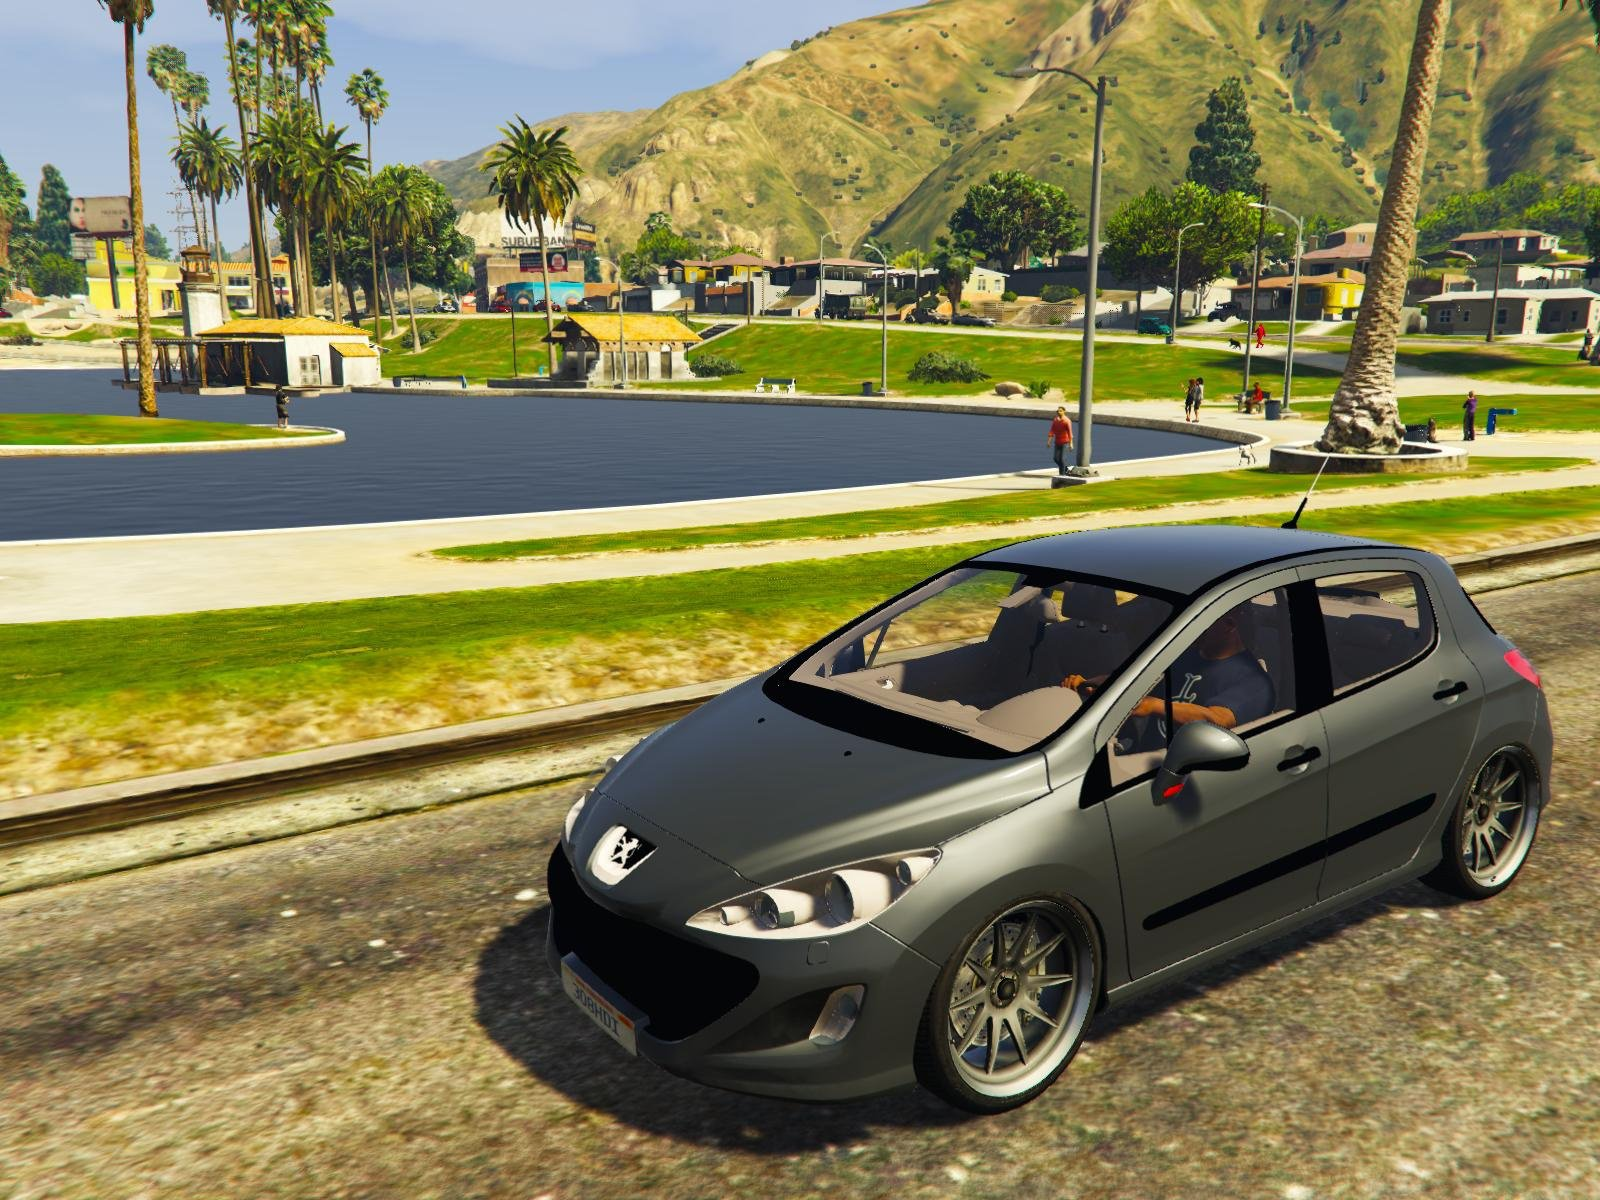 peugeot 308 hdi vehicules pour gta v sur gta modding. Black Bedroom Furniture Sets. Home Design Ideas